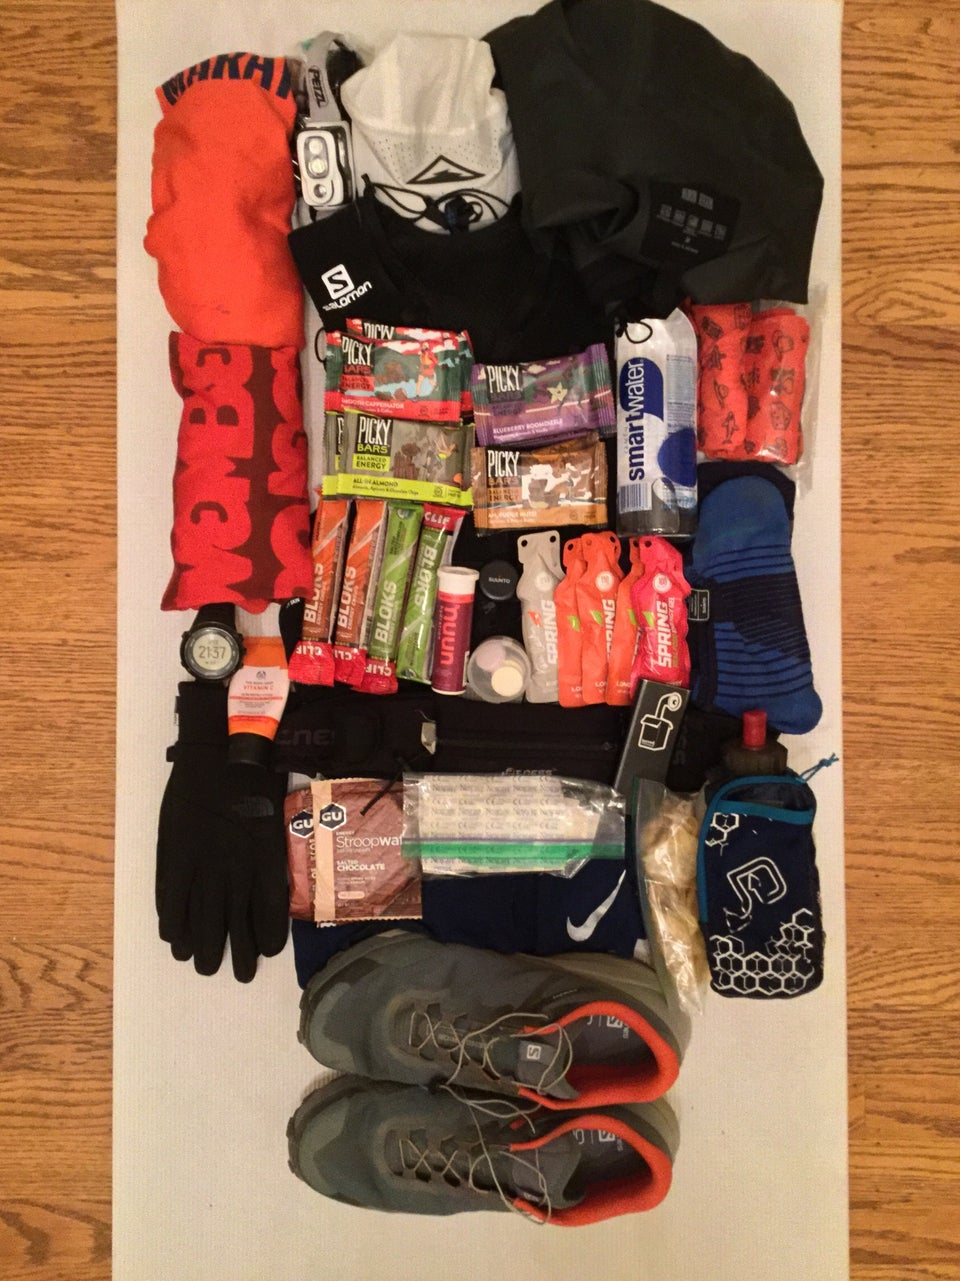 Race kit laid out on a yoga mat.